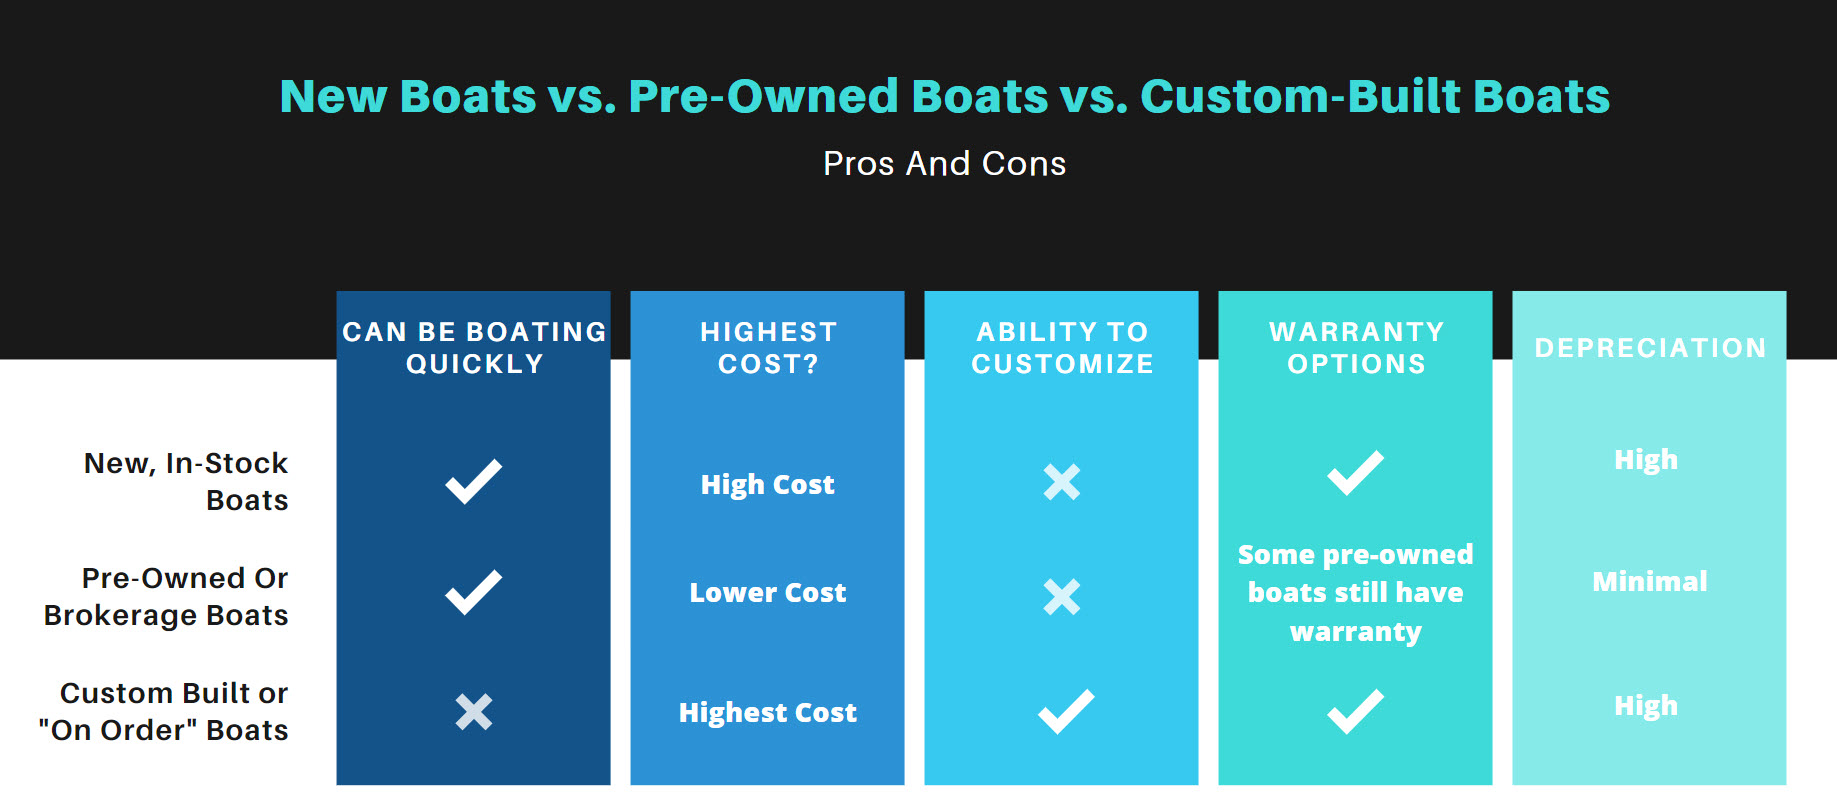 pros and cons of being a new versus used boat